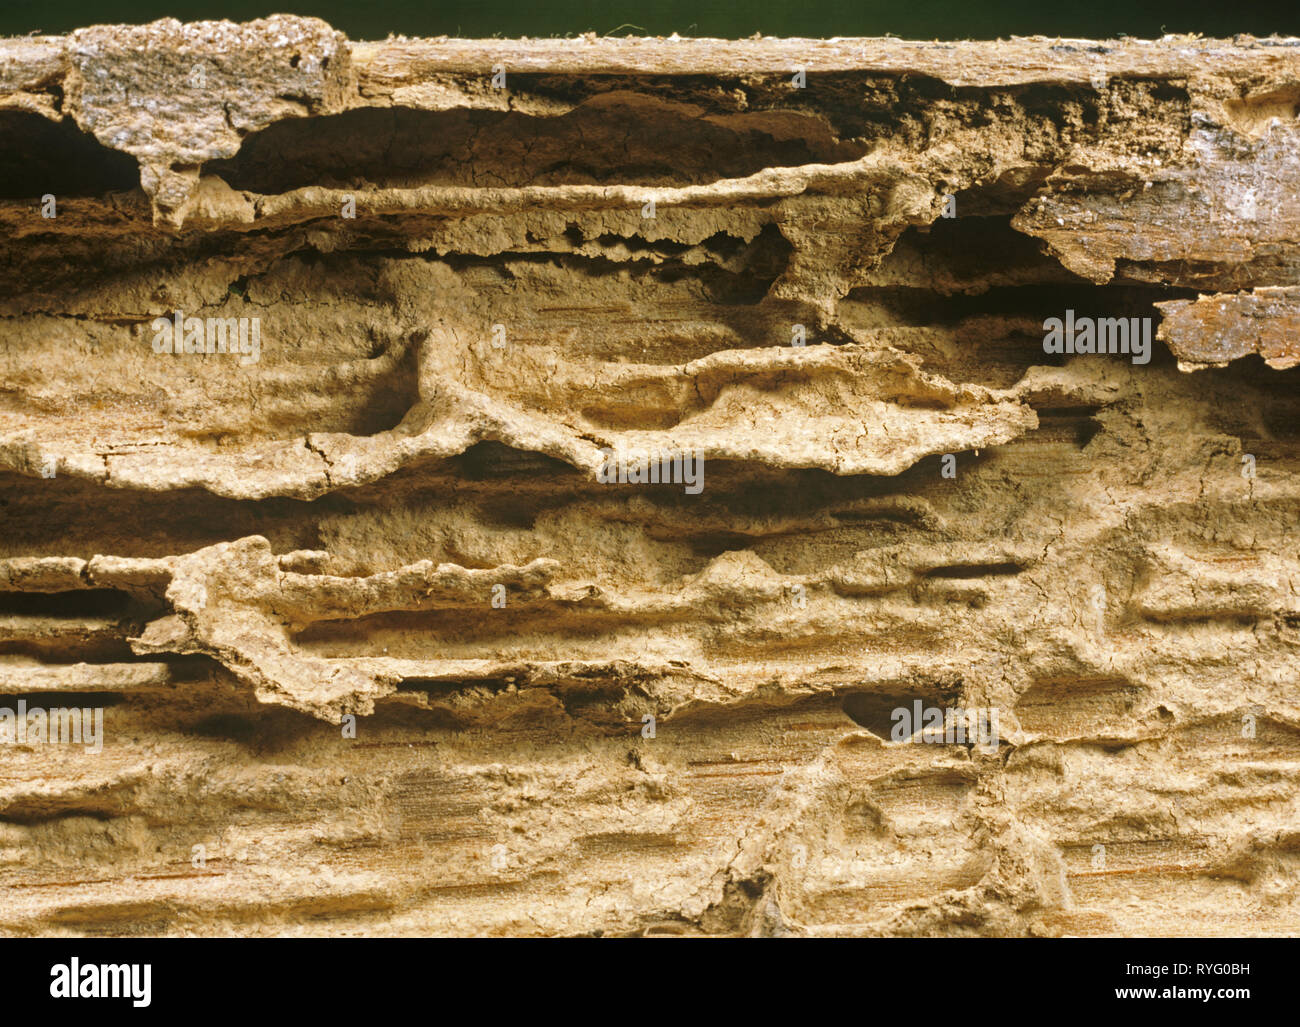 Severe damage caused by termites (Reticulitermes sp.) to a wooden skirting board - Stock Image